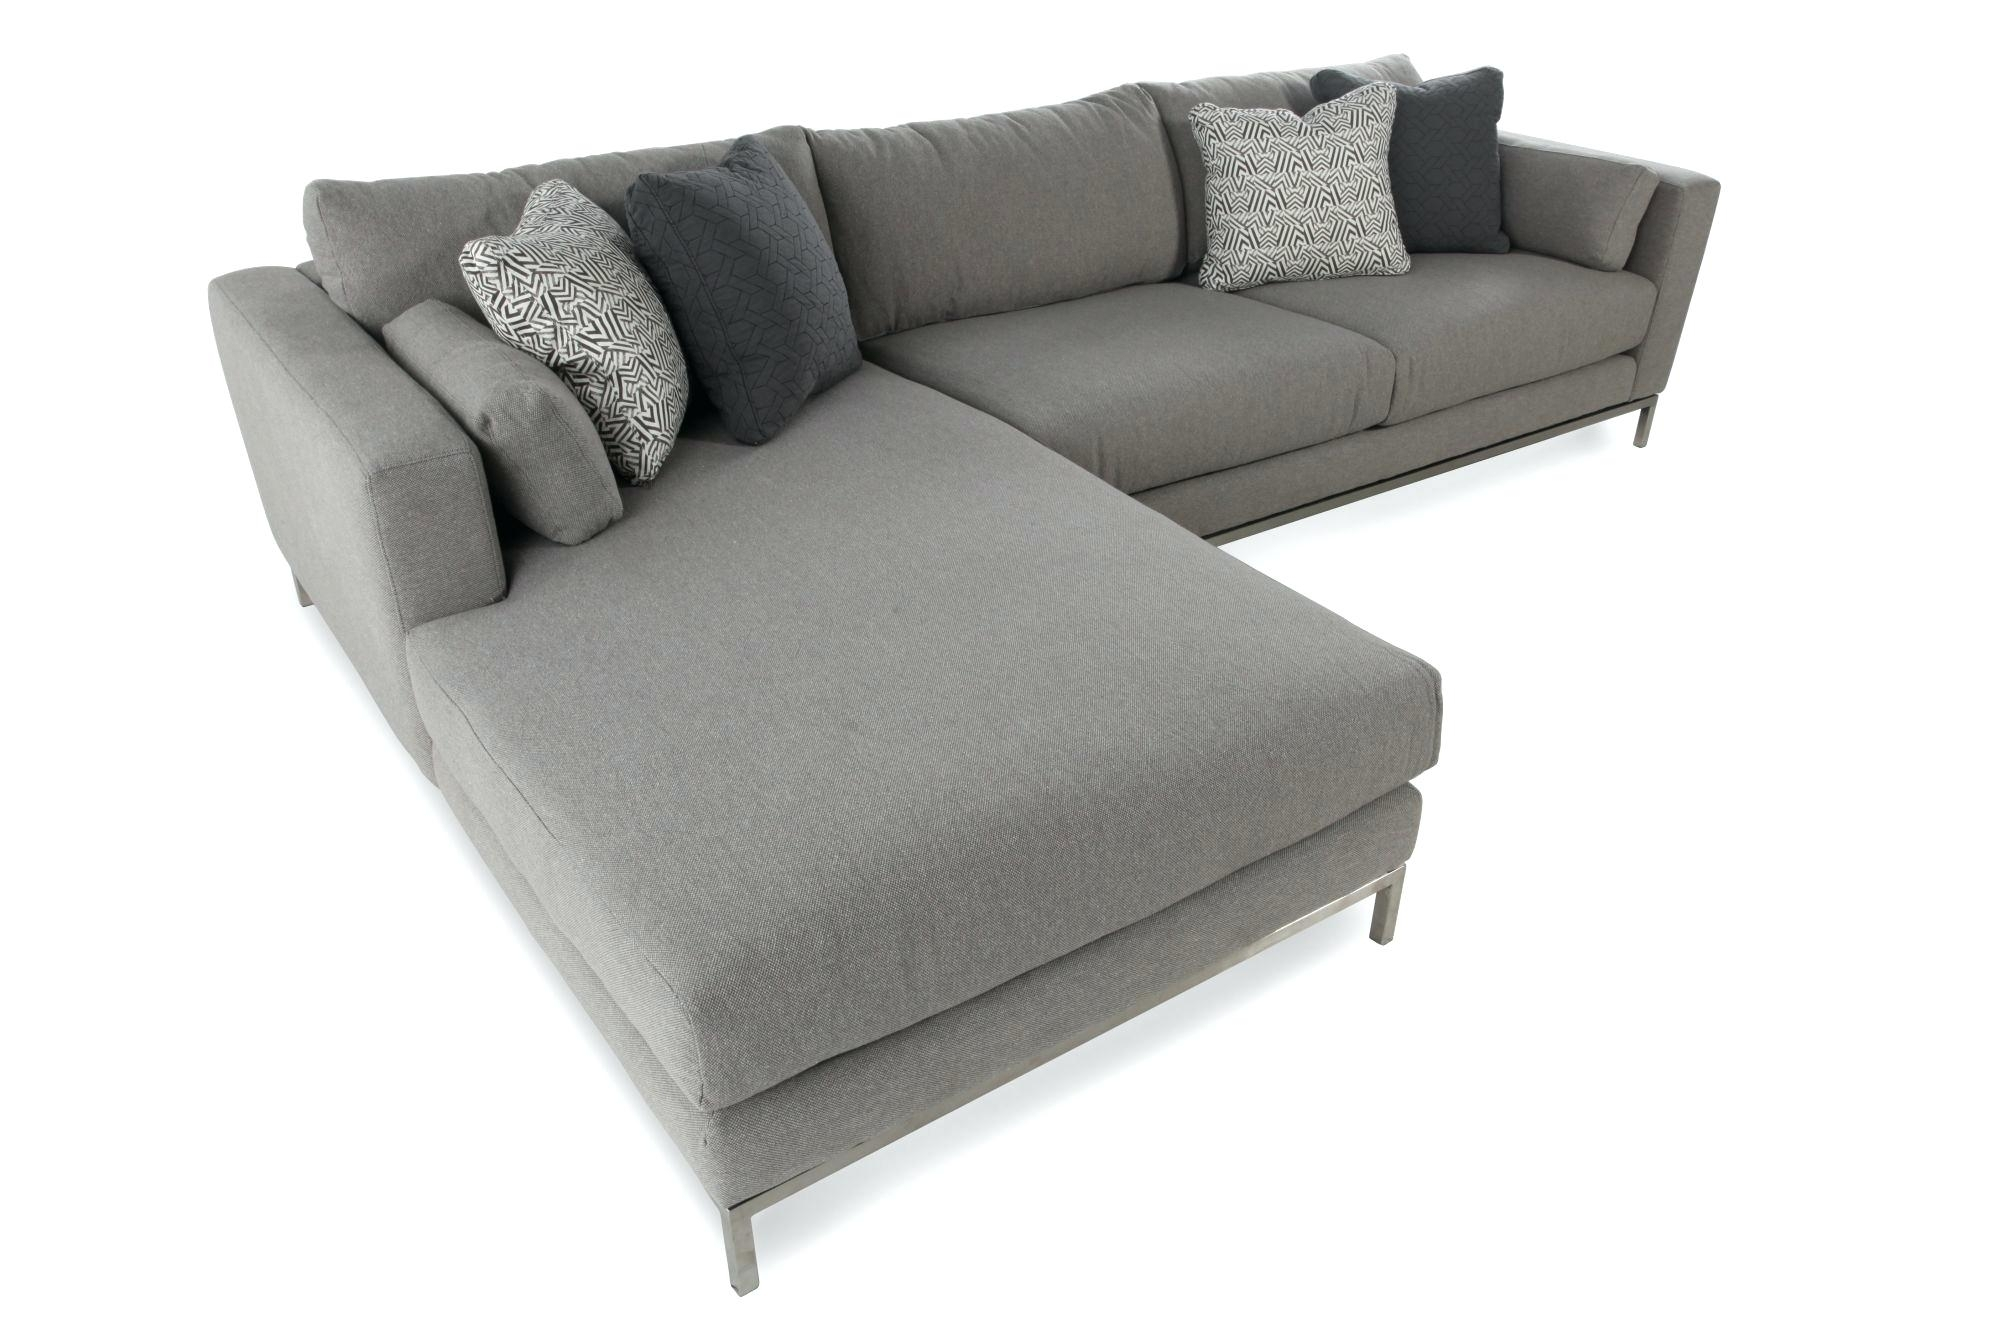 2 Piece Sectional Sofa Canada | Baci Living Room For Cosmos Grey 2 Piece Sectionals With Raf Chaise (View 12 of 25)